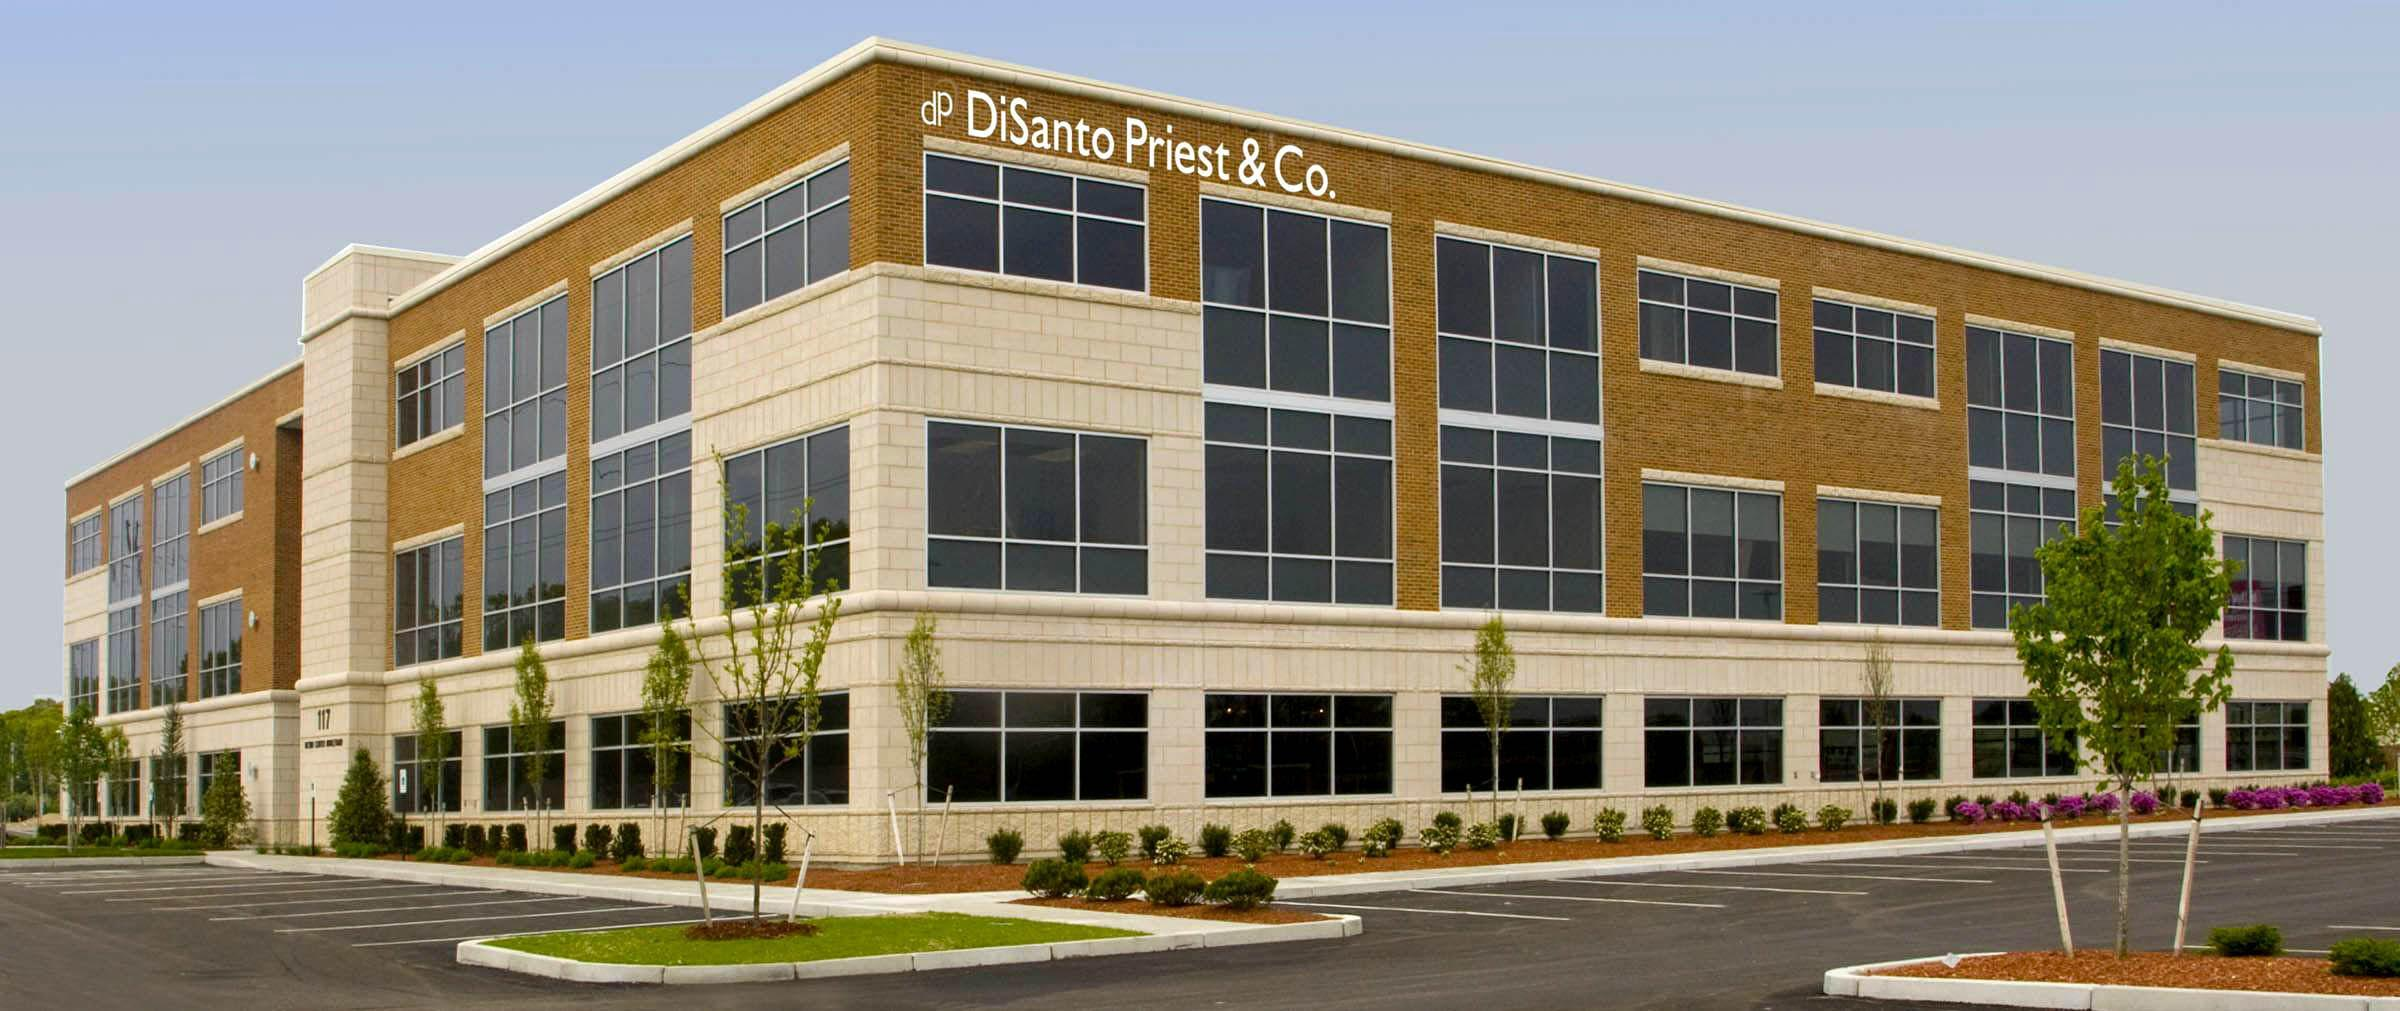 Disanto Priest Amp Co Accountants And Business Advisors